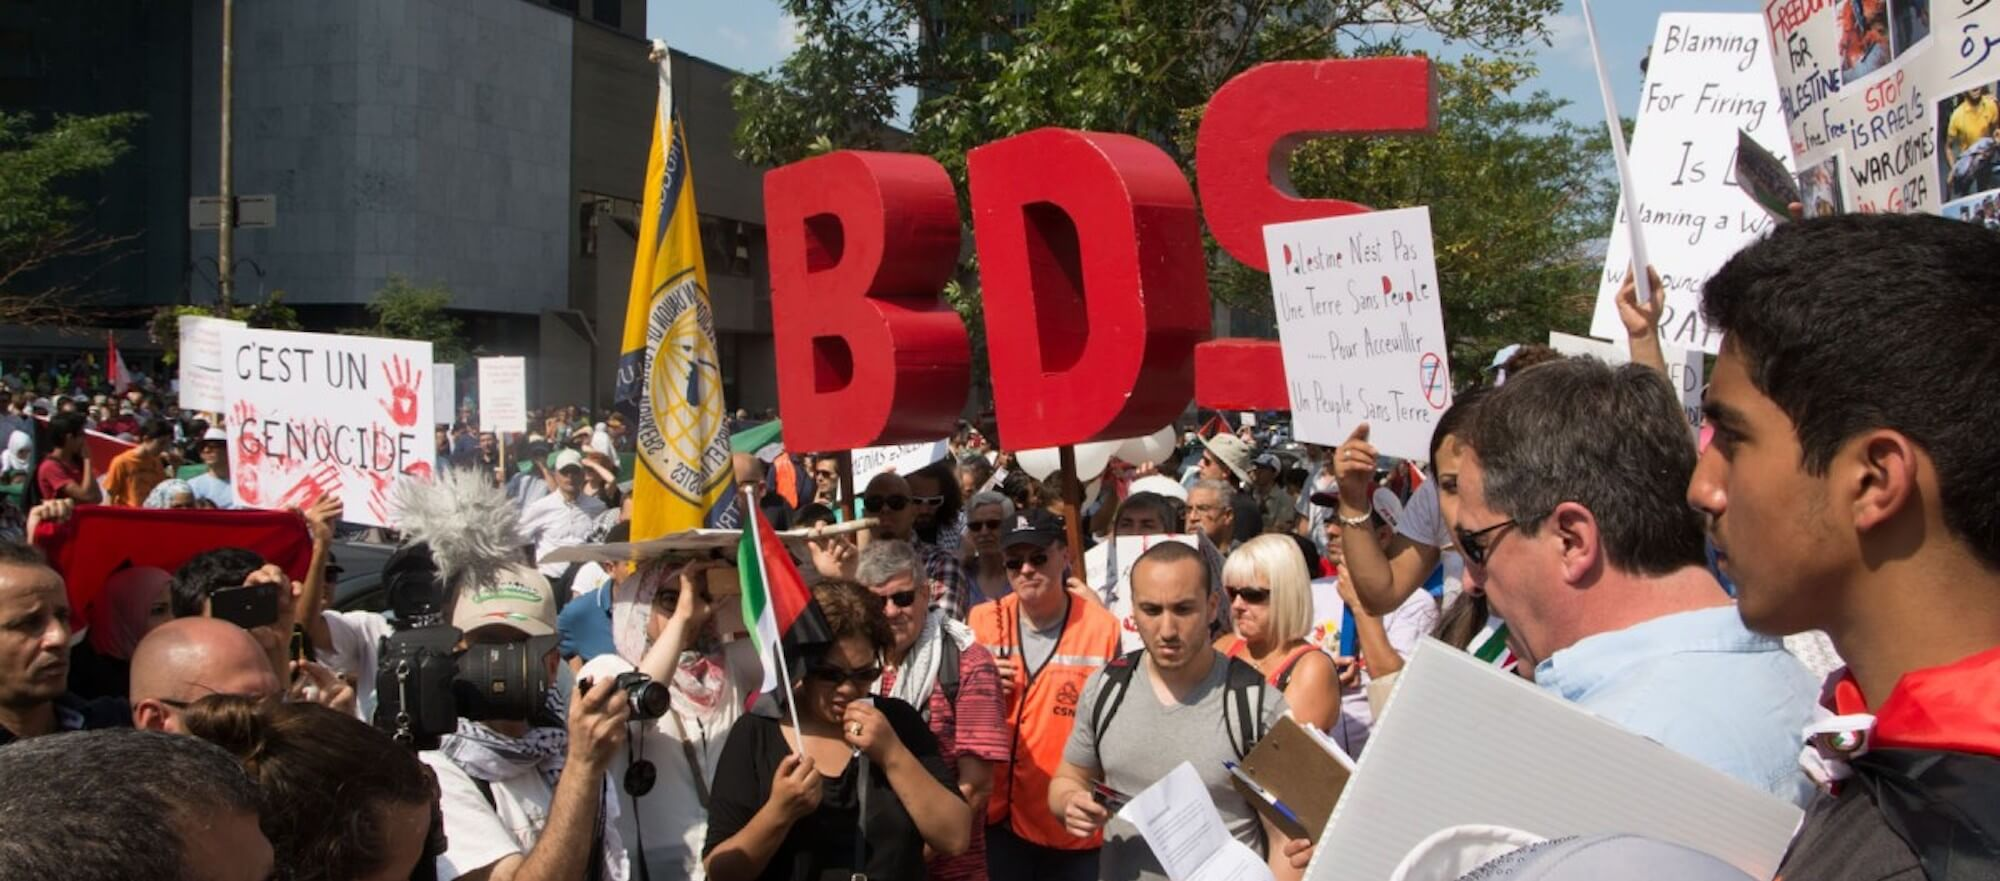 BDS protest (Photo: Scott Weinstein)